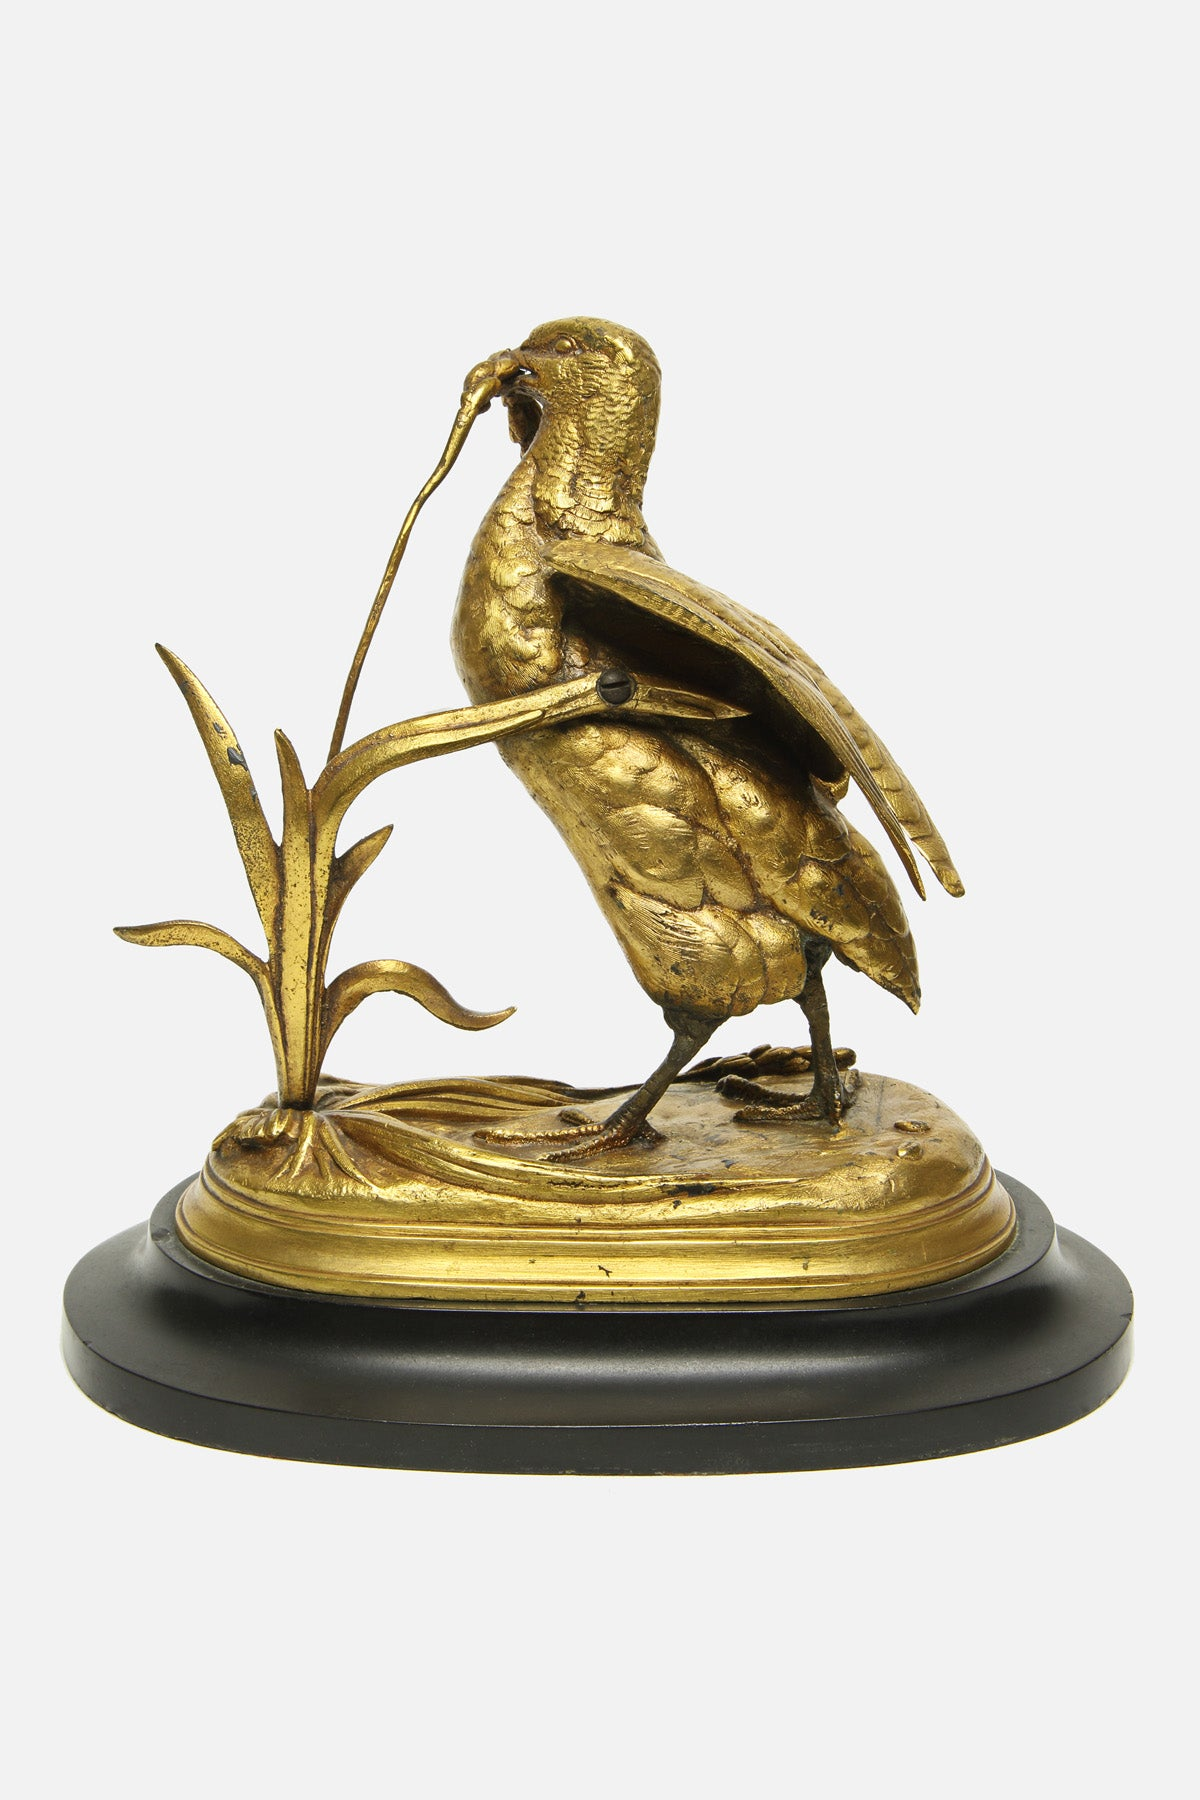 VINTAGE - BRONZE FEEDING BIRD SCULPTURE - JULES MOIGNIEZ - Fortune Goods